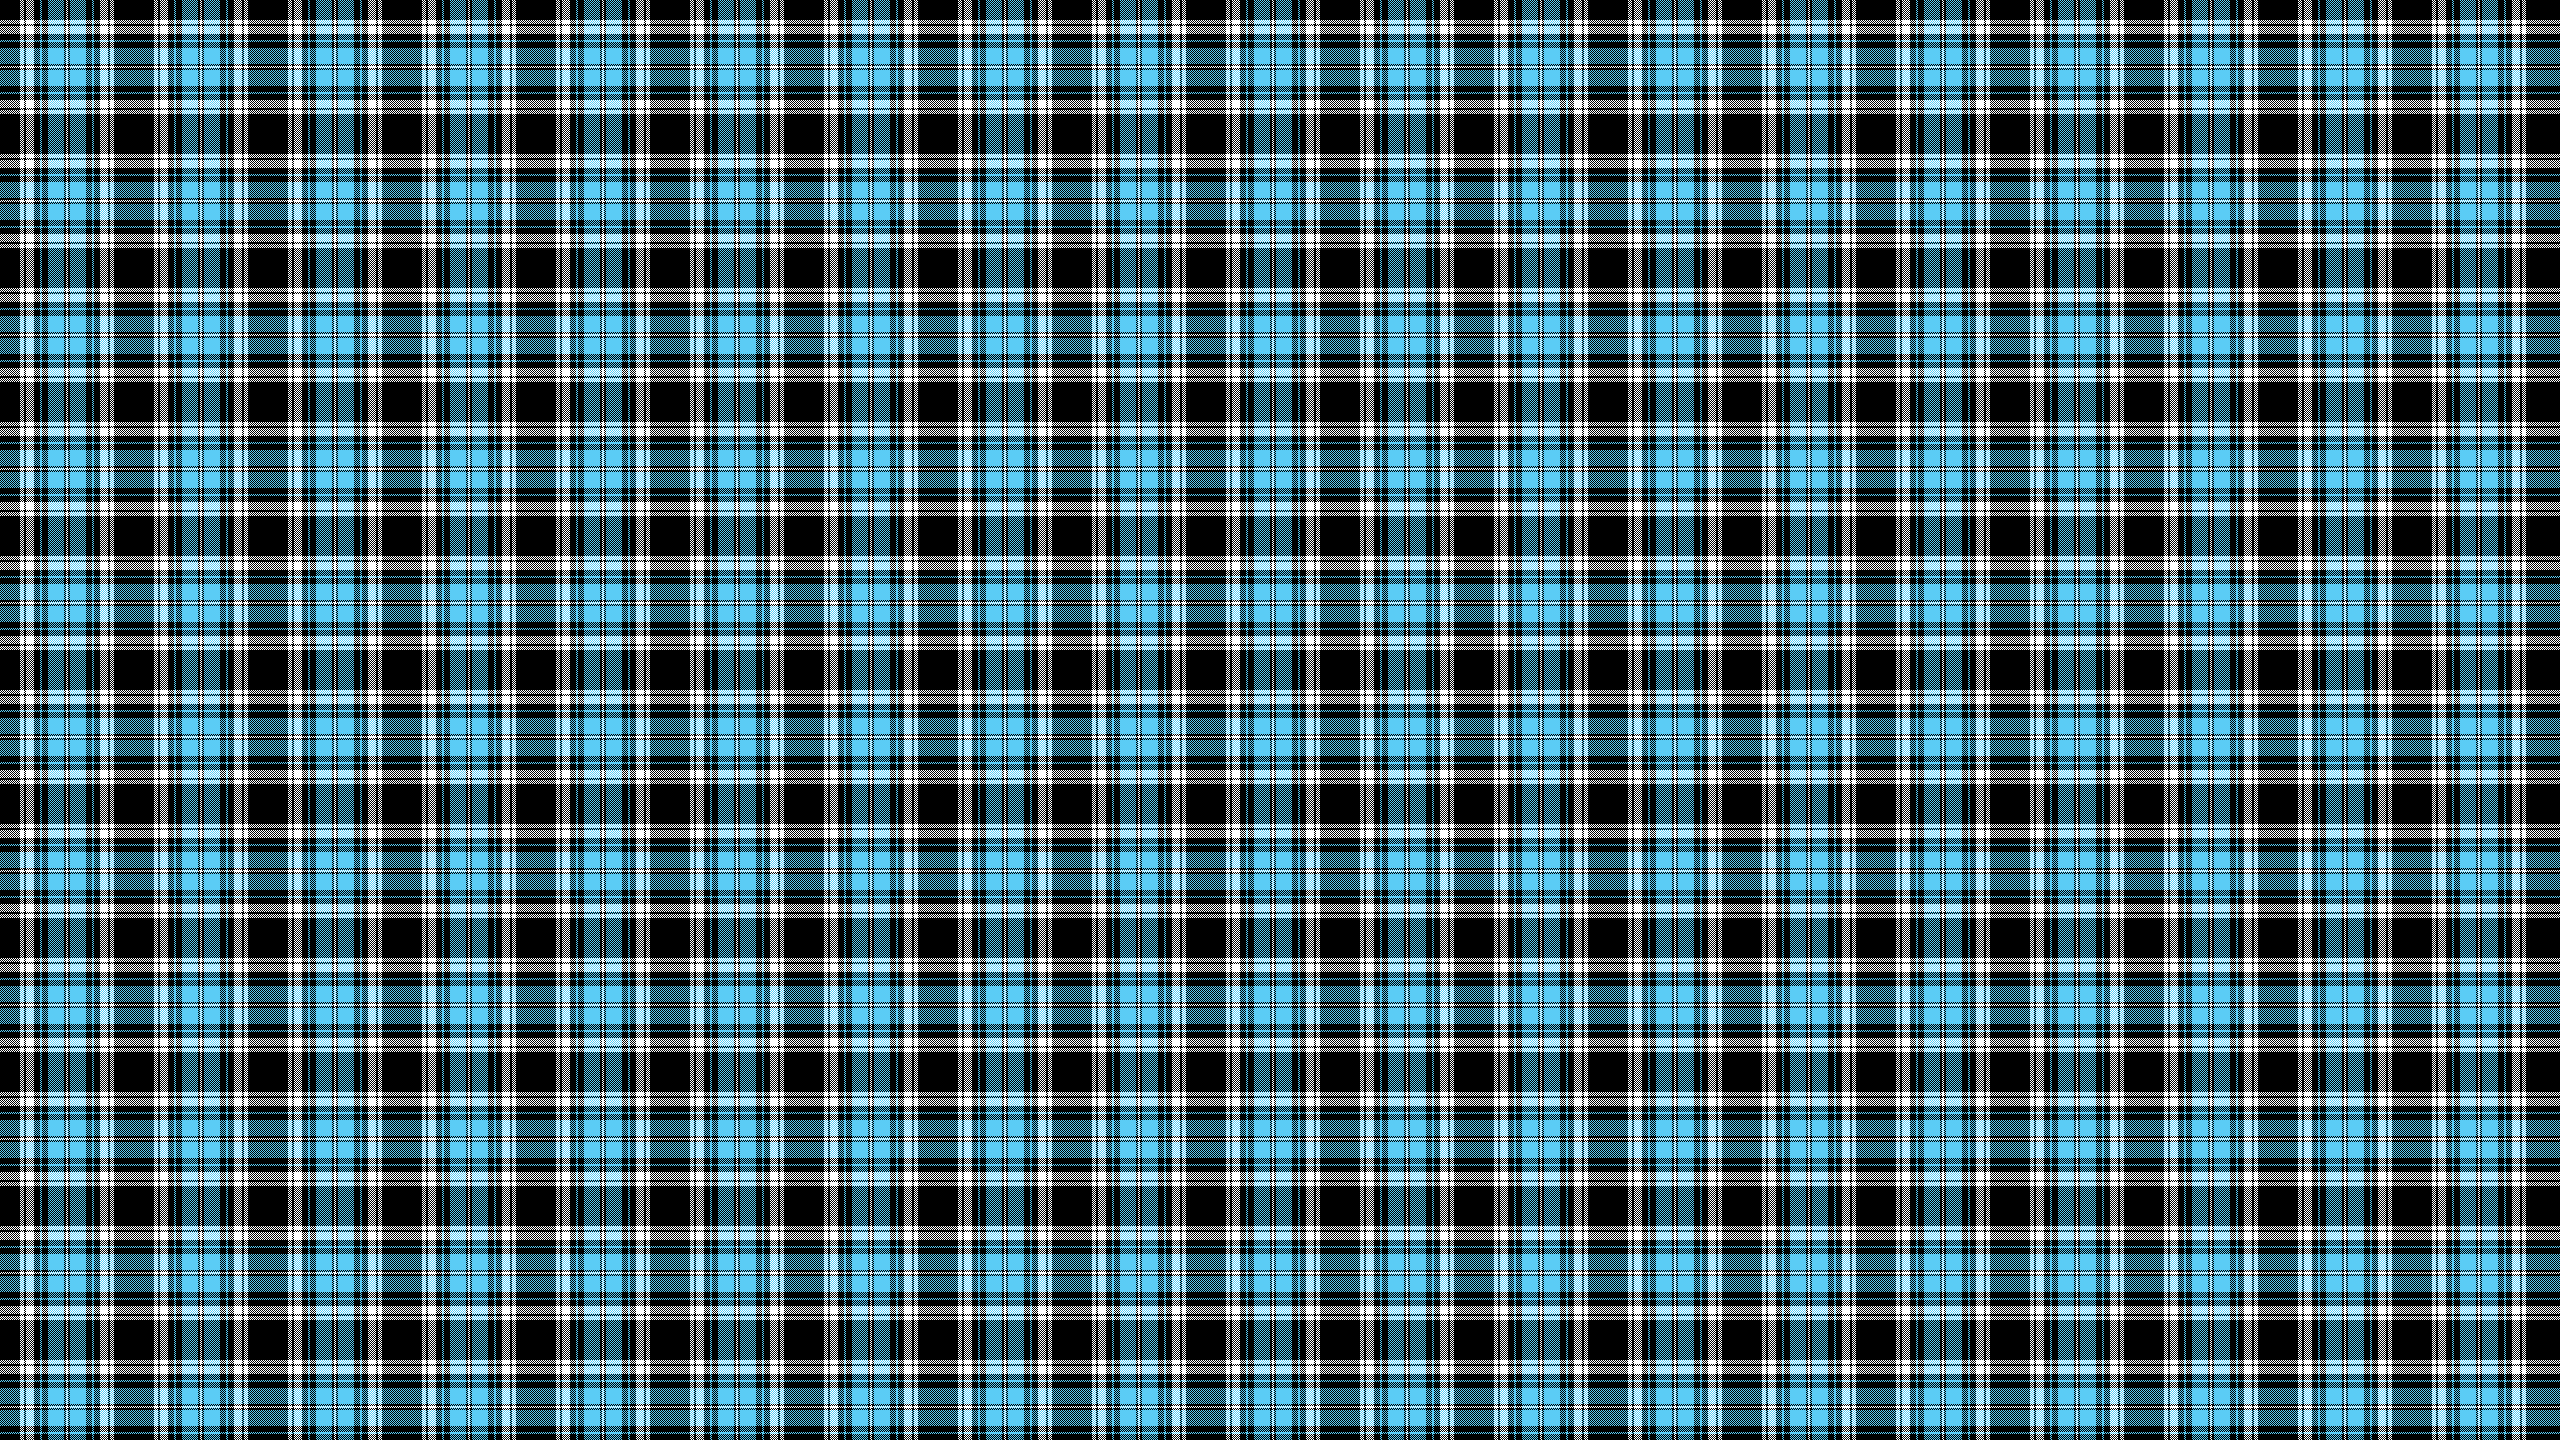 2560x1440 - Blue Plaid 25